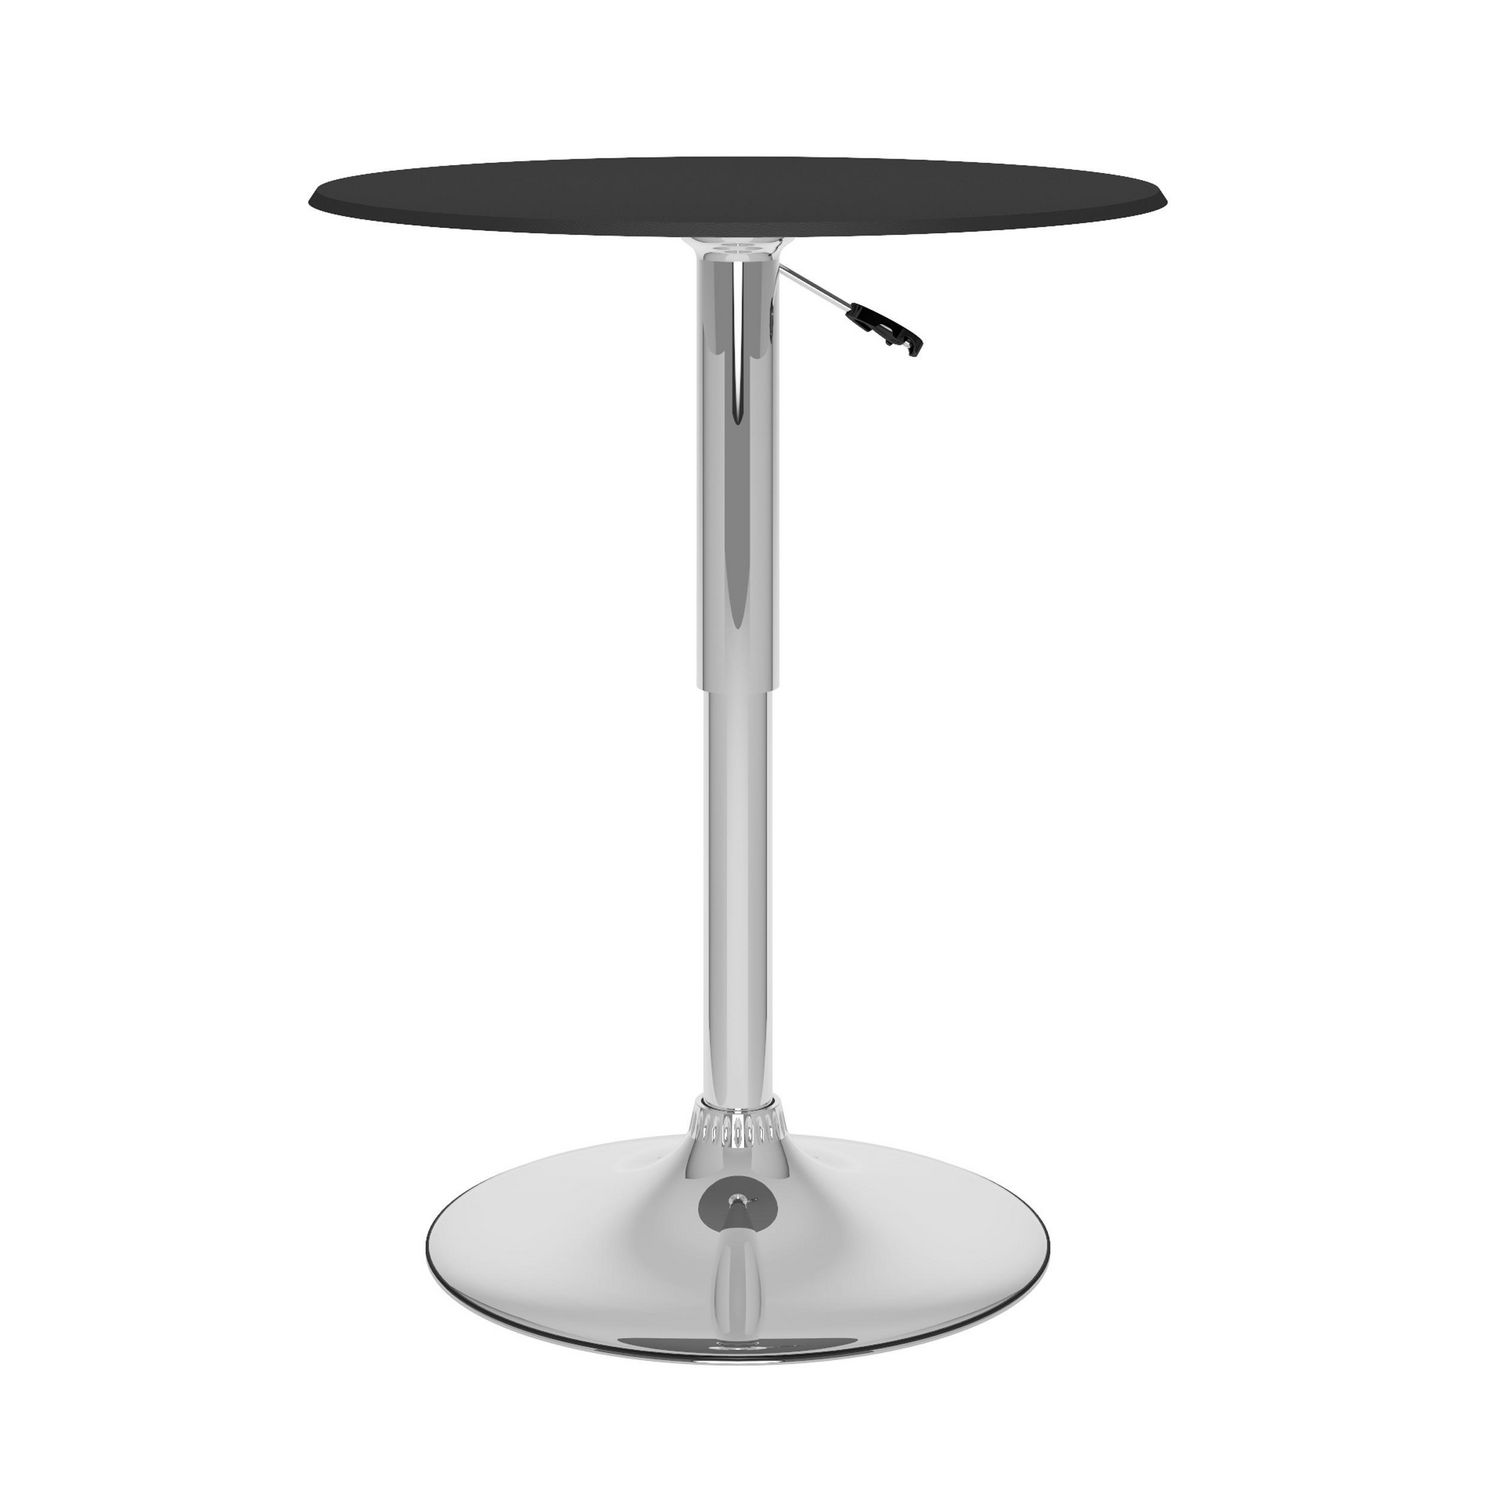 corliving tvpd adjustable bar table in black leatherette  - corliving tvpd adjustable bar table in black leatherette  walmartca